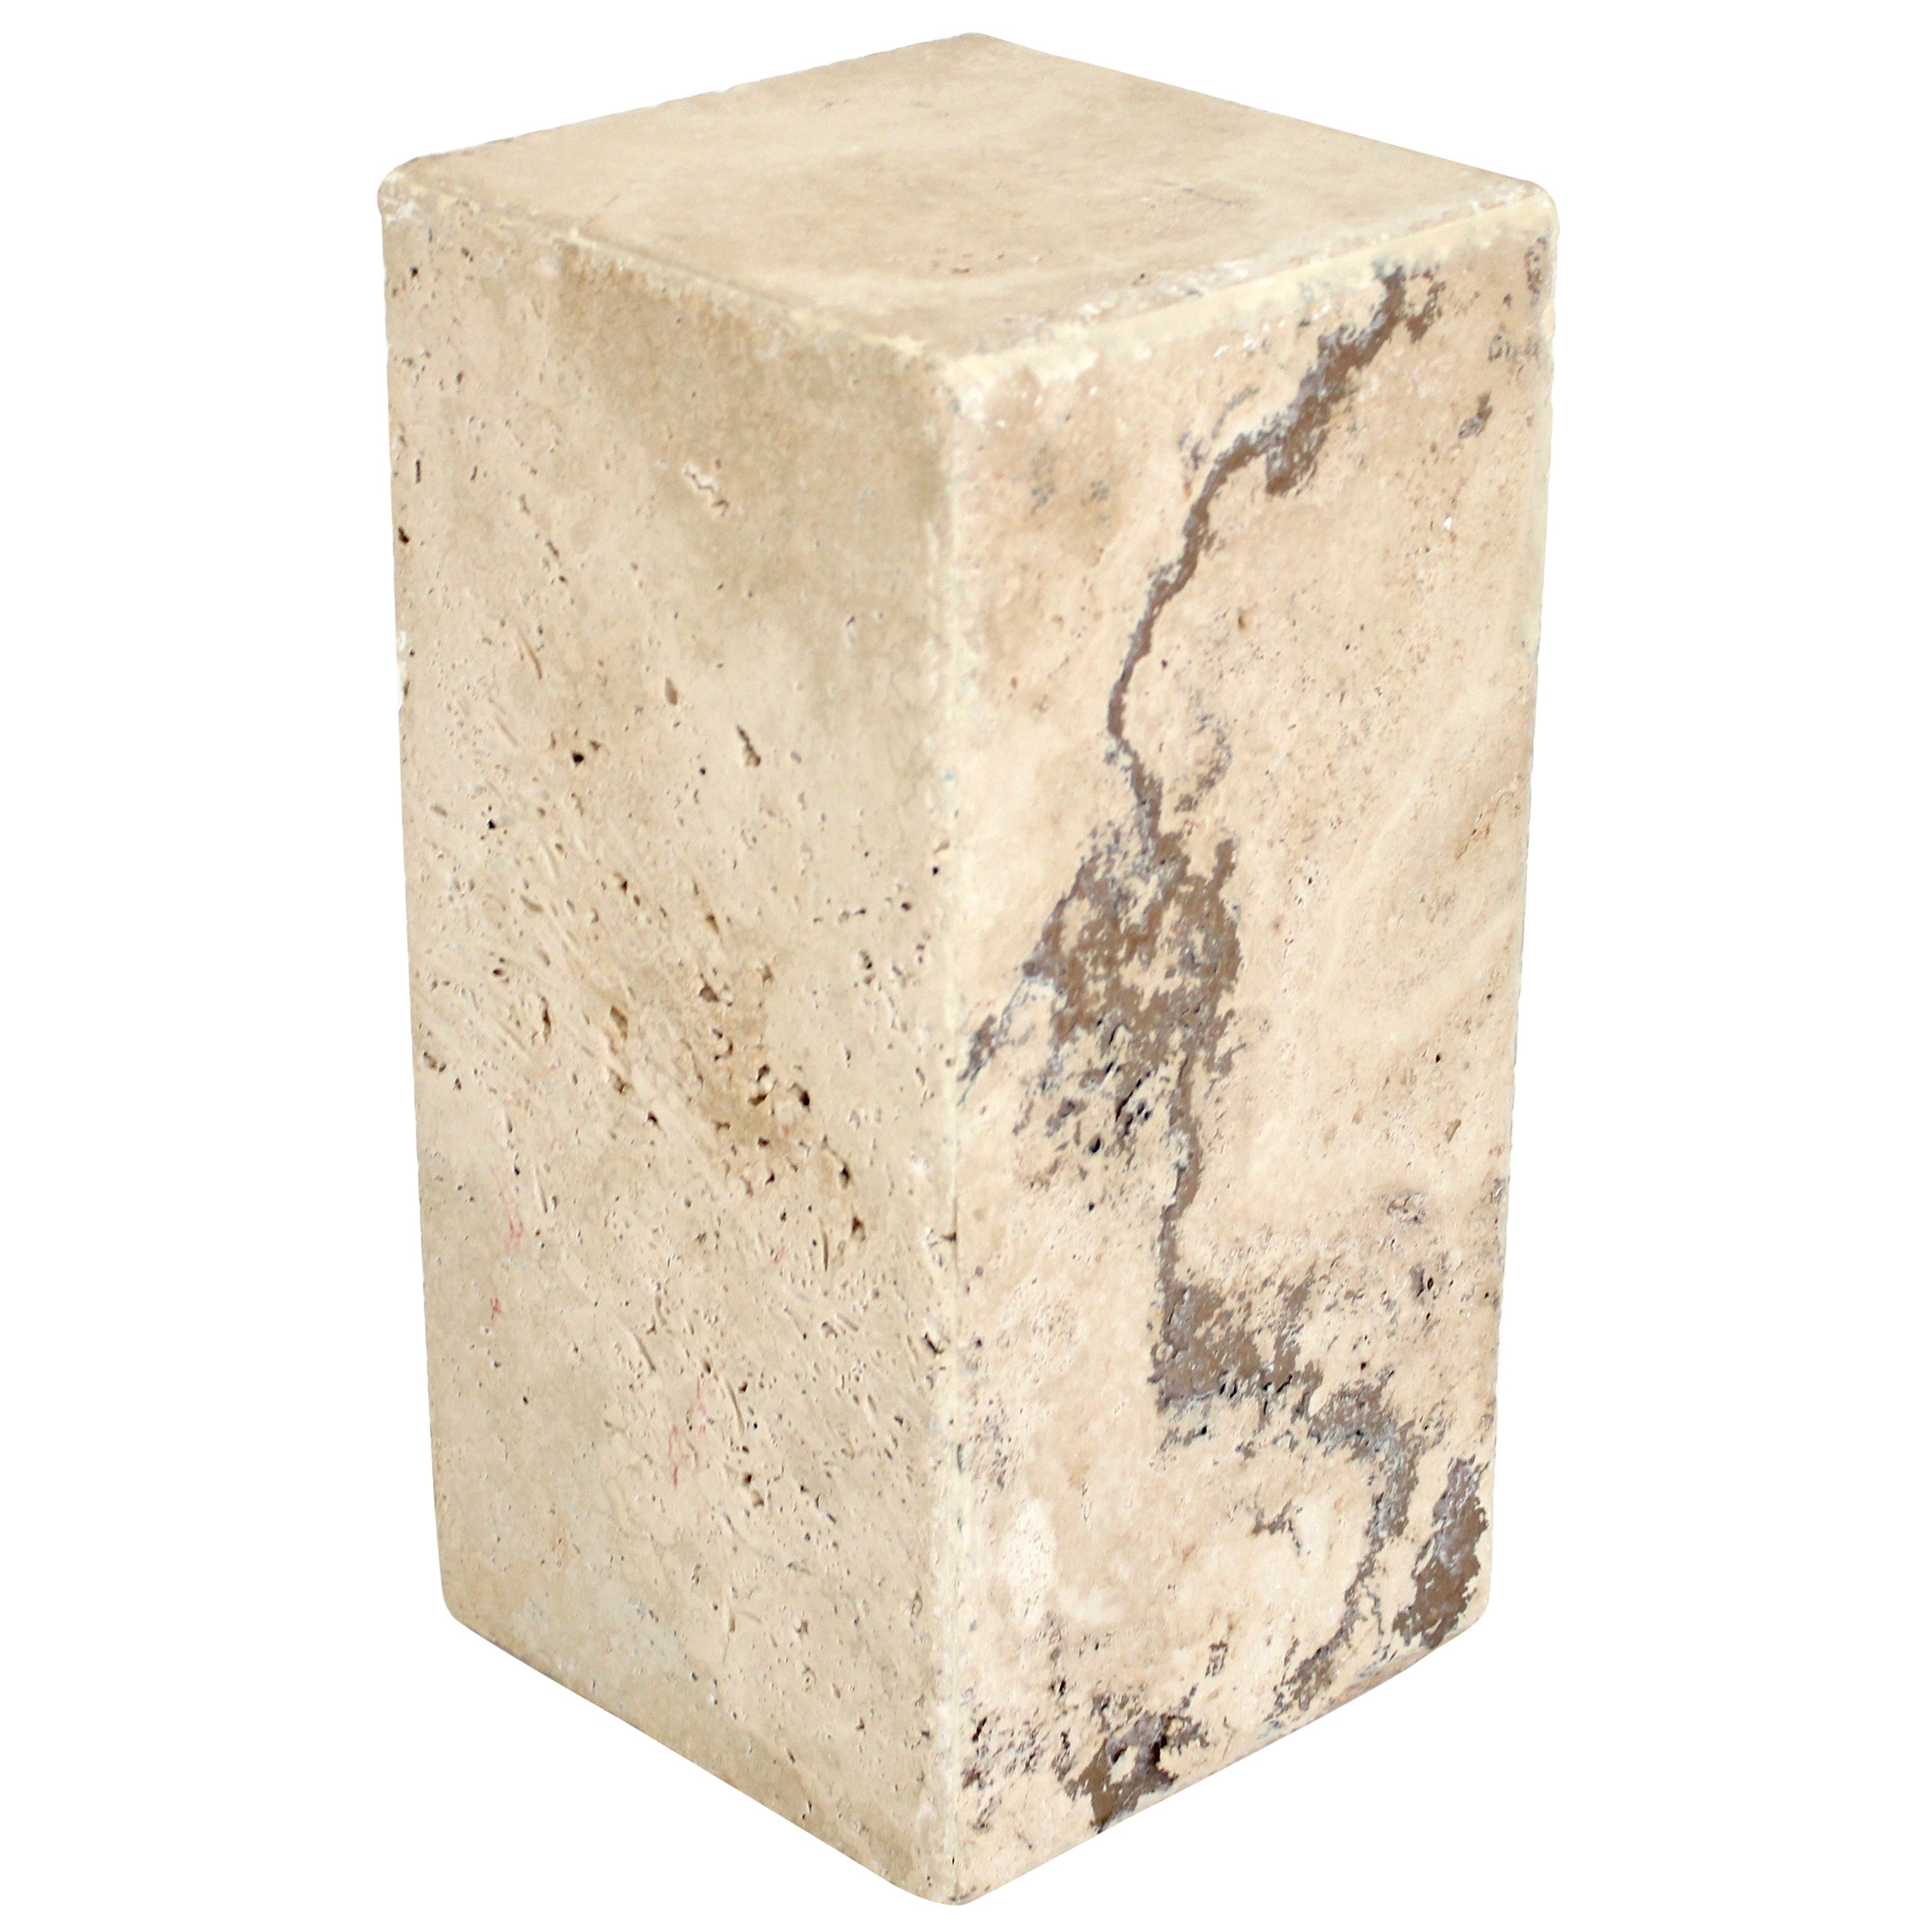 Travertine Marble Rectangular Tall Side Table Sculpture Stand or Drinks Table